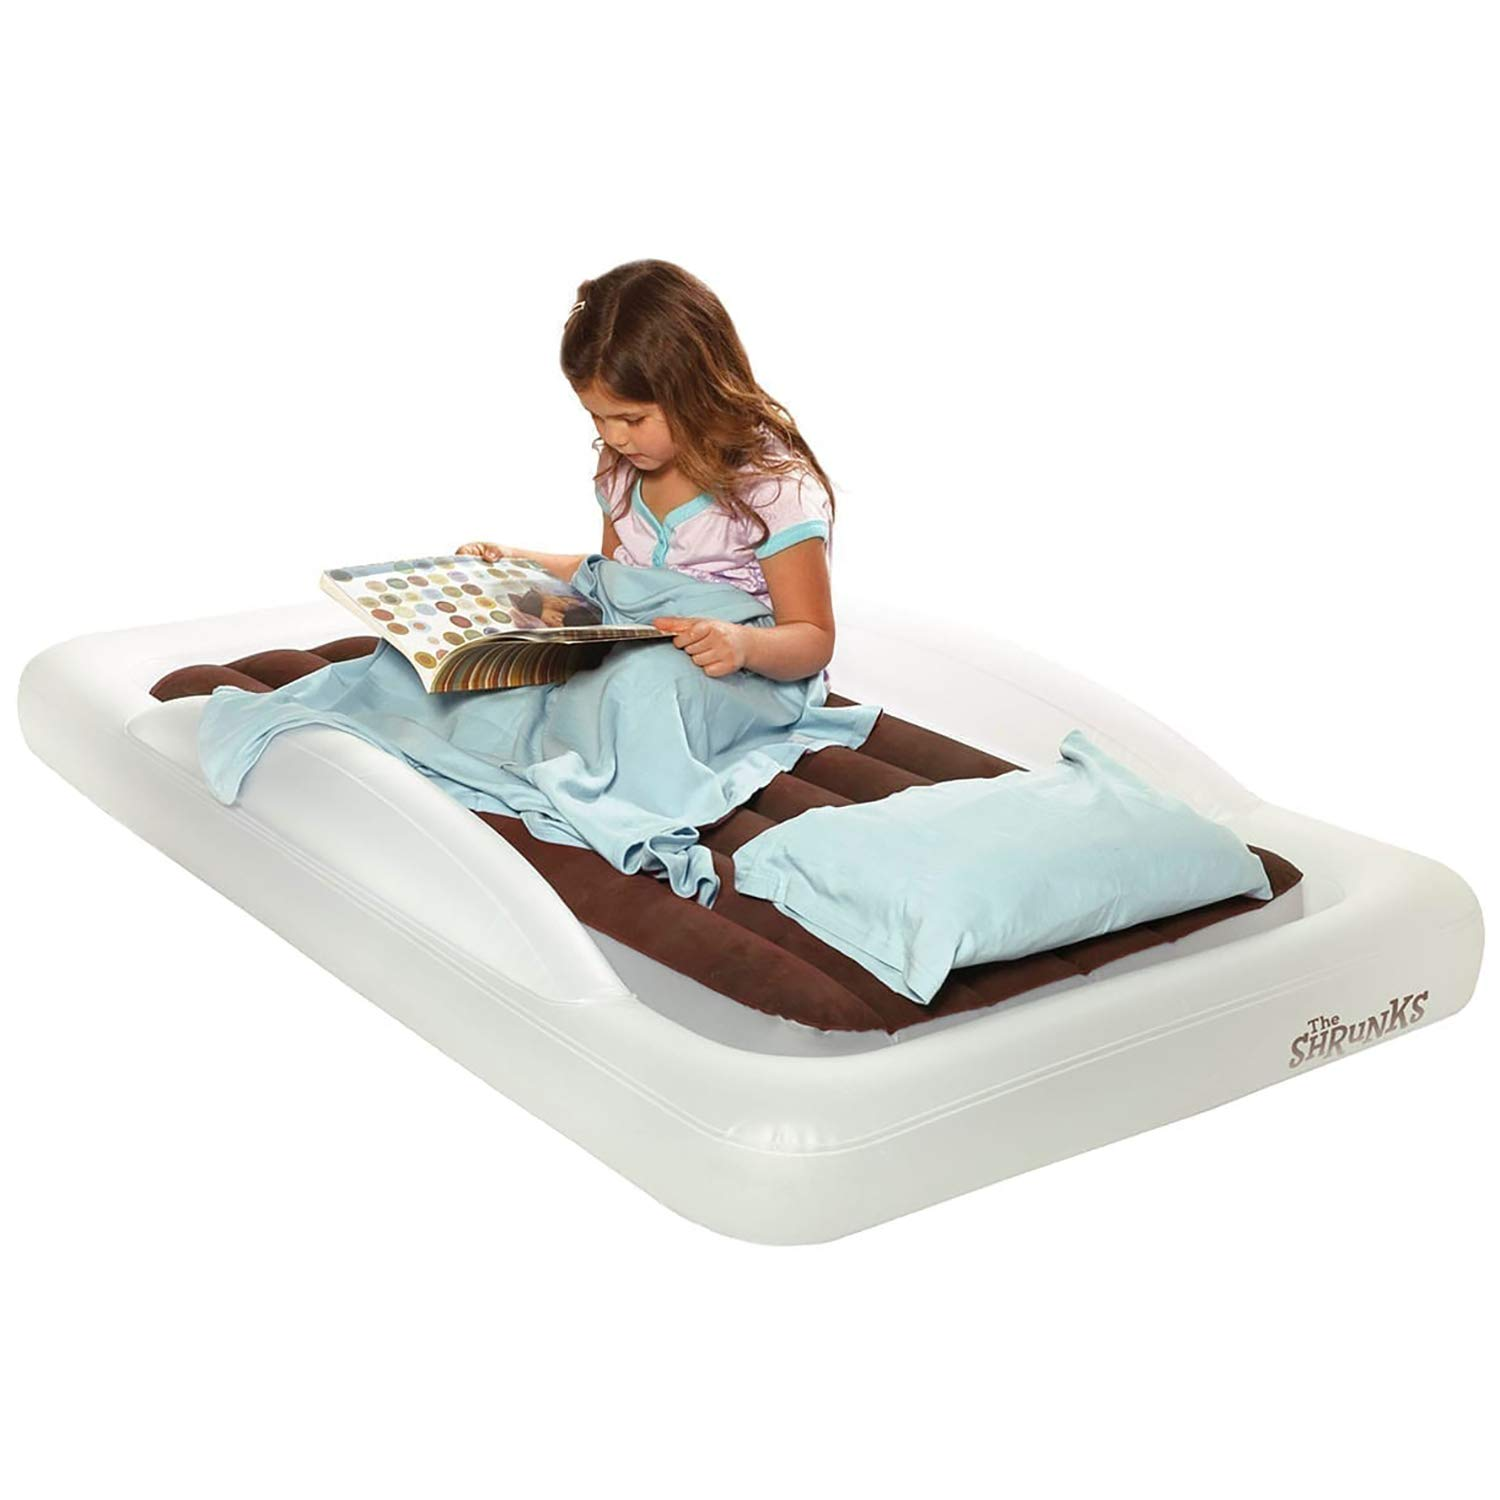 The Shrunks Toddler Travel Bed Portable Inflatable Air Mattress Blow Up Bed for Travel, Camping, or Home Use, Kids Size with Security Bed Rails and Quiet Comfort Top 60 x 37 x 9 inches